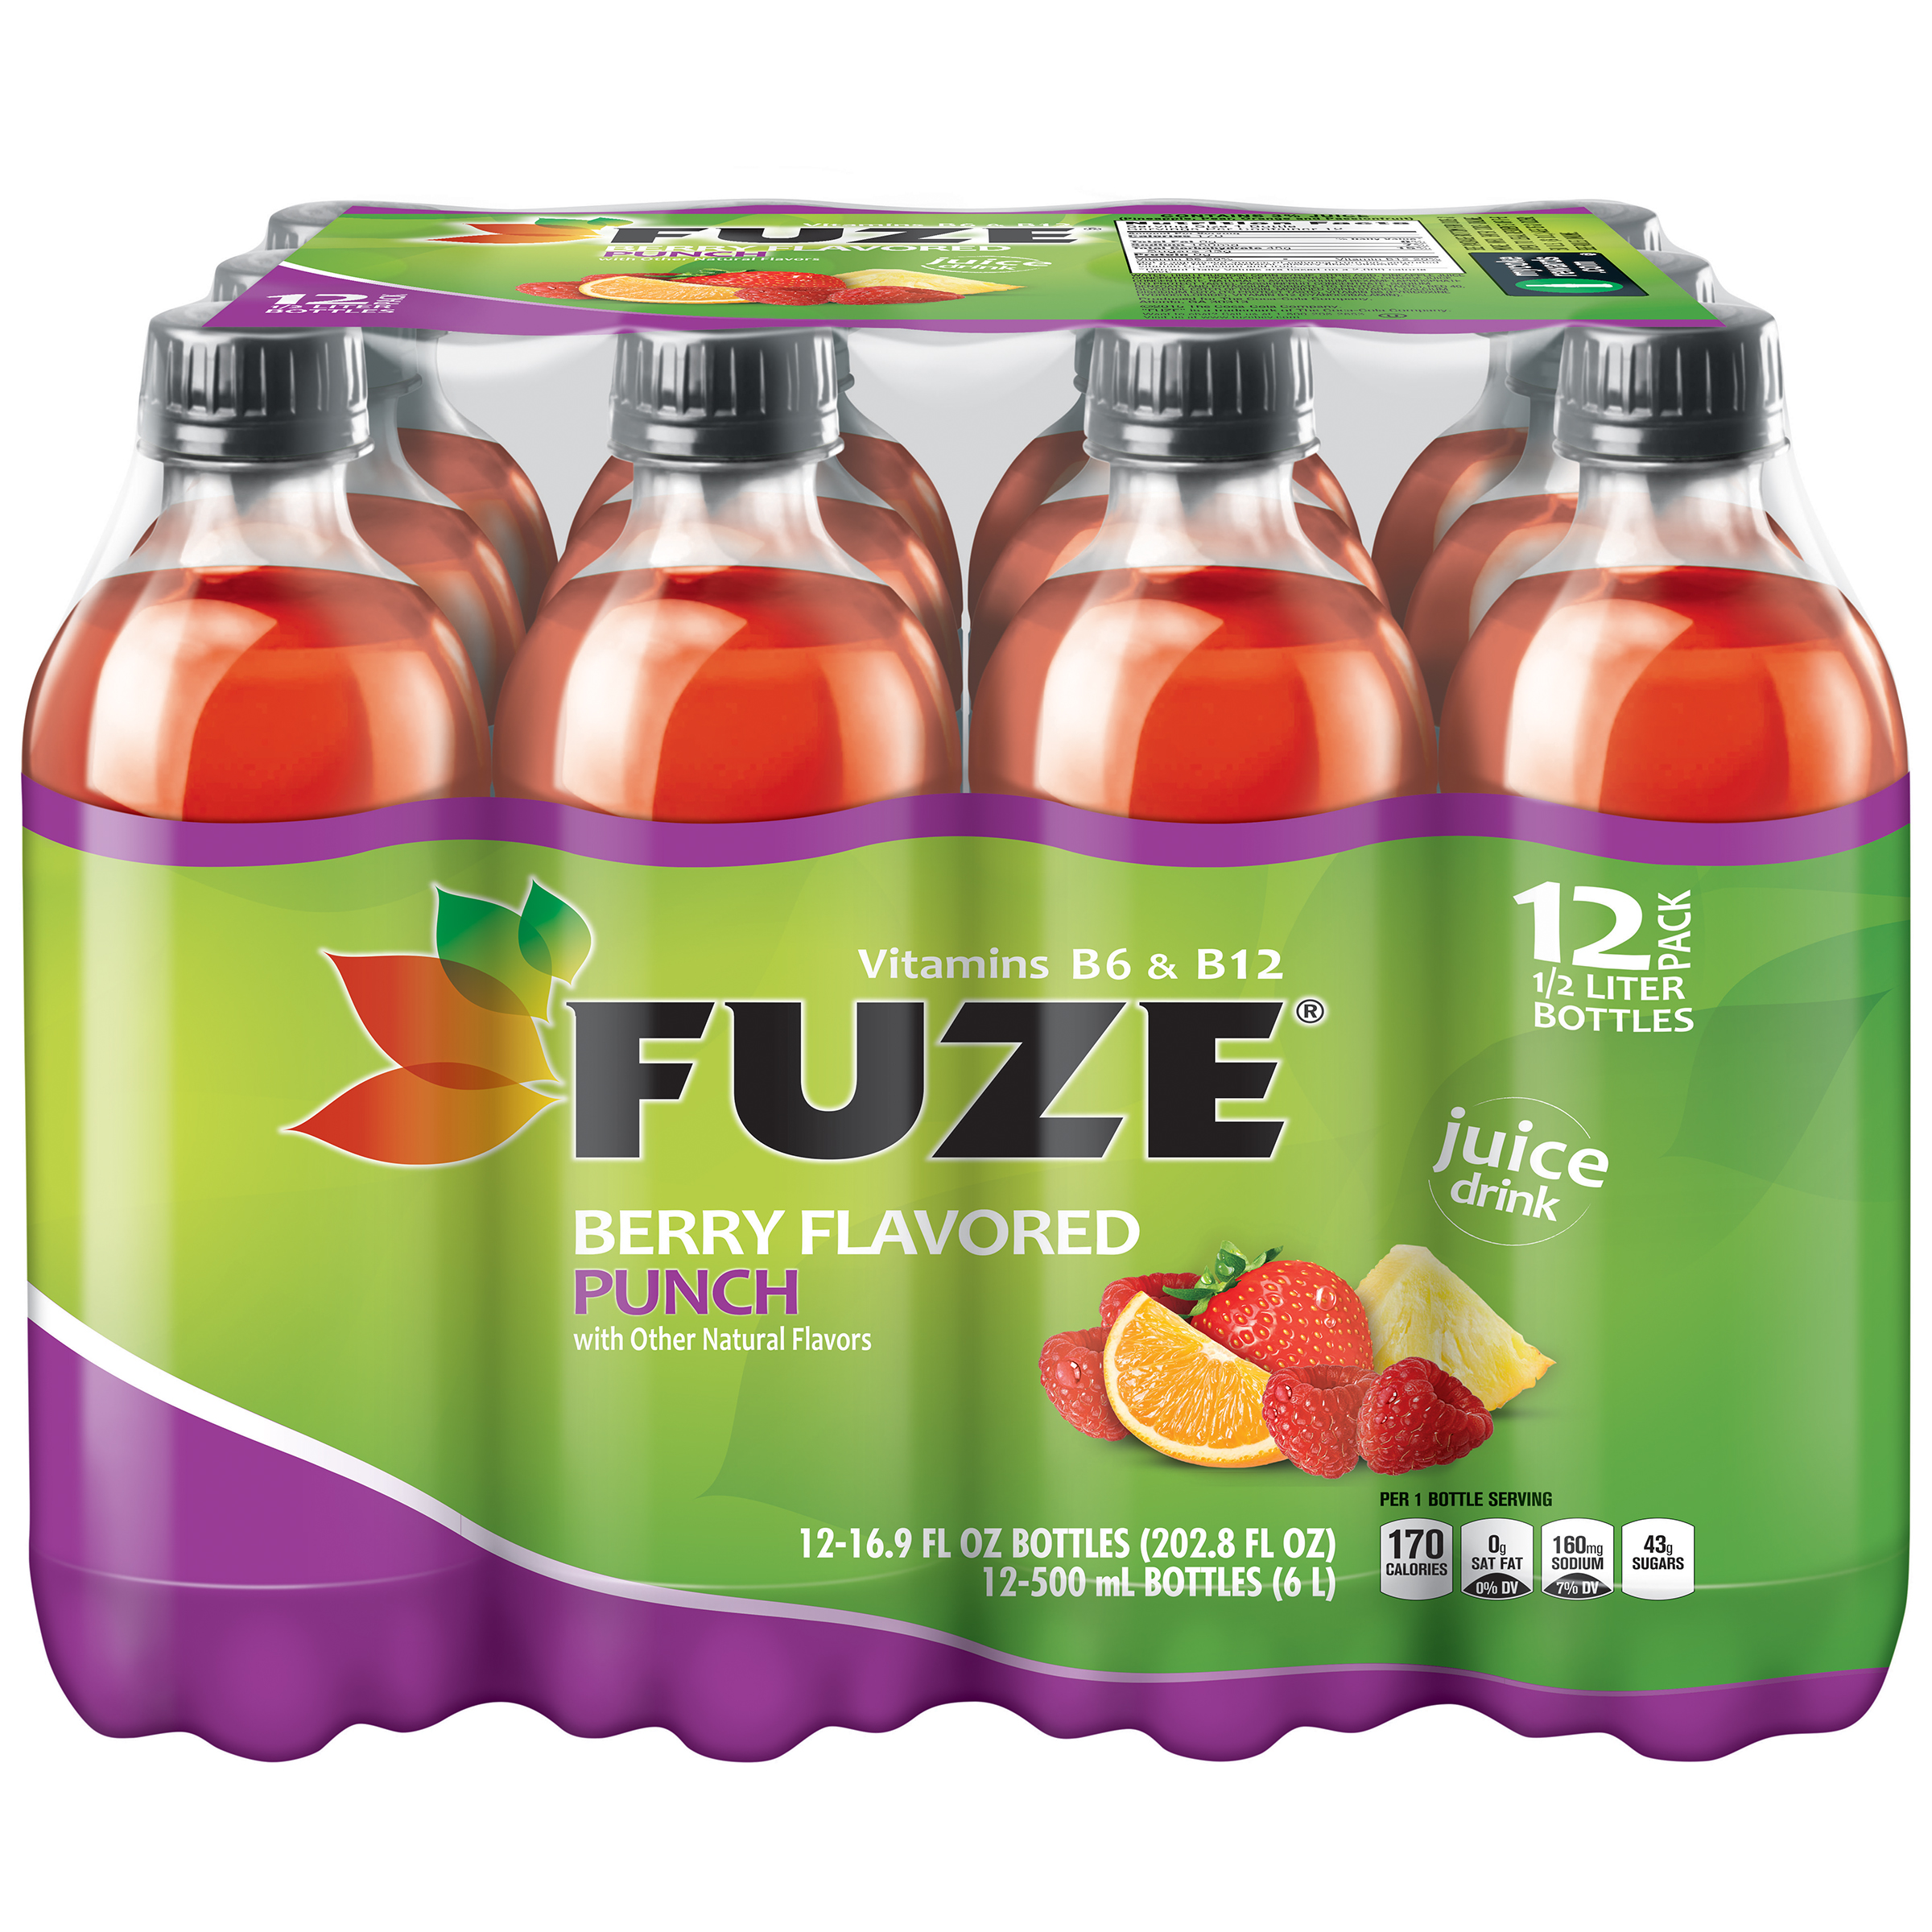 FUZE, Berry Flavored Punch, 16.9 fl oz, 12 Pack